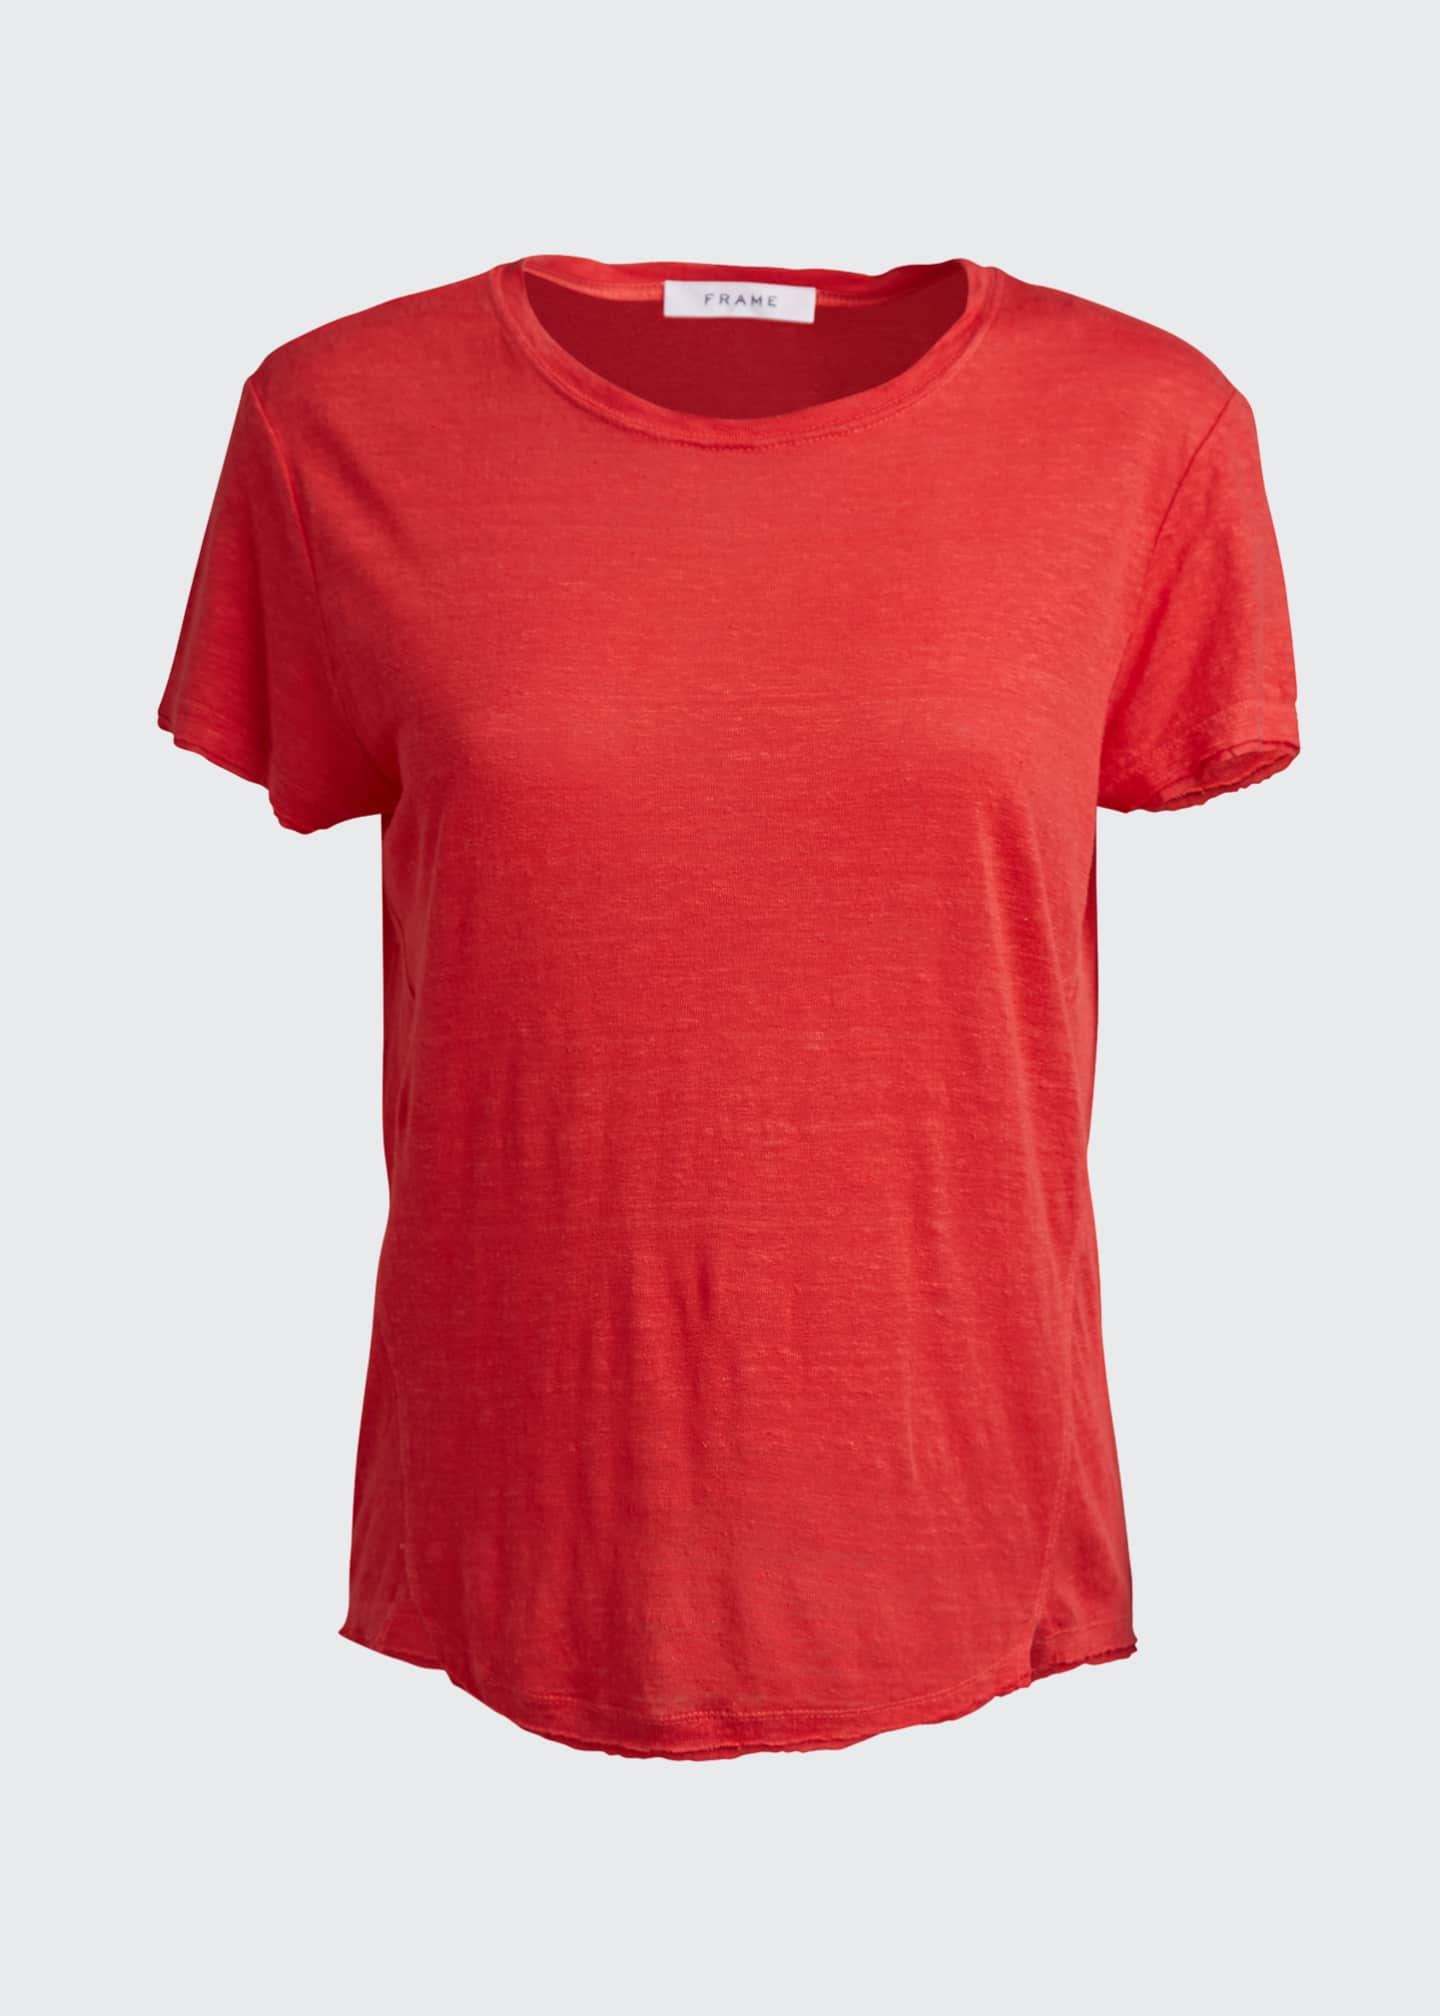 Image 5 of 5: Easy True Organic Linen Tee